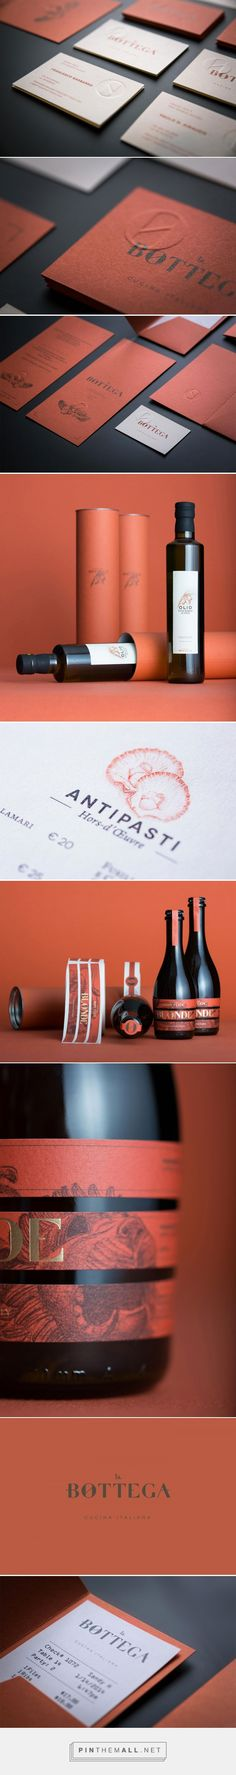 La Bottega restaurant visual identity, designed by Kidstudio | Identity Designed